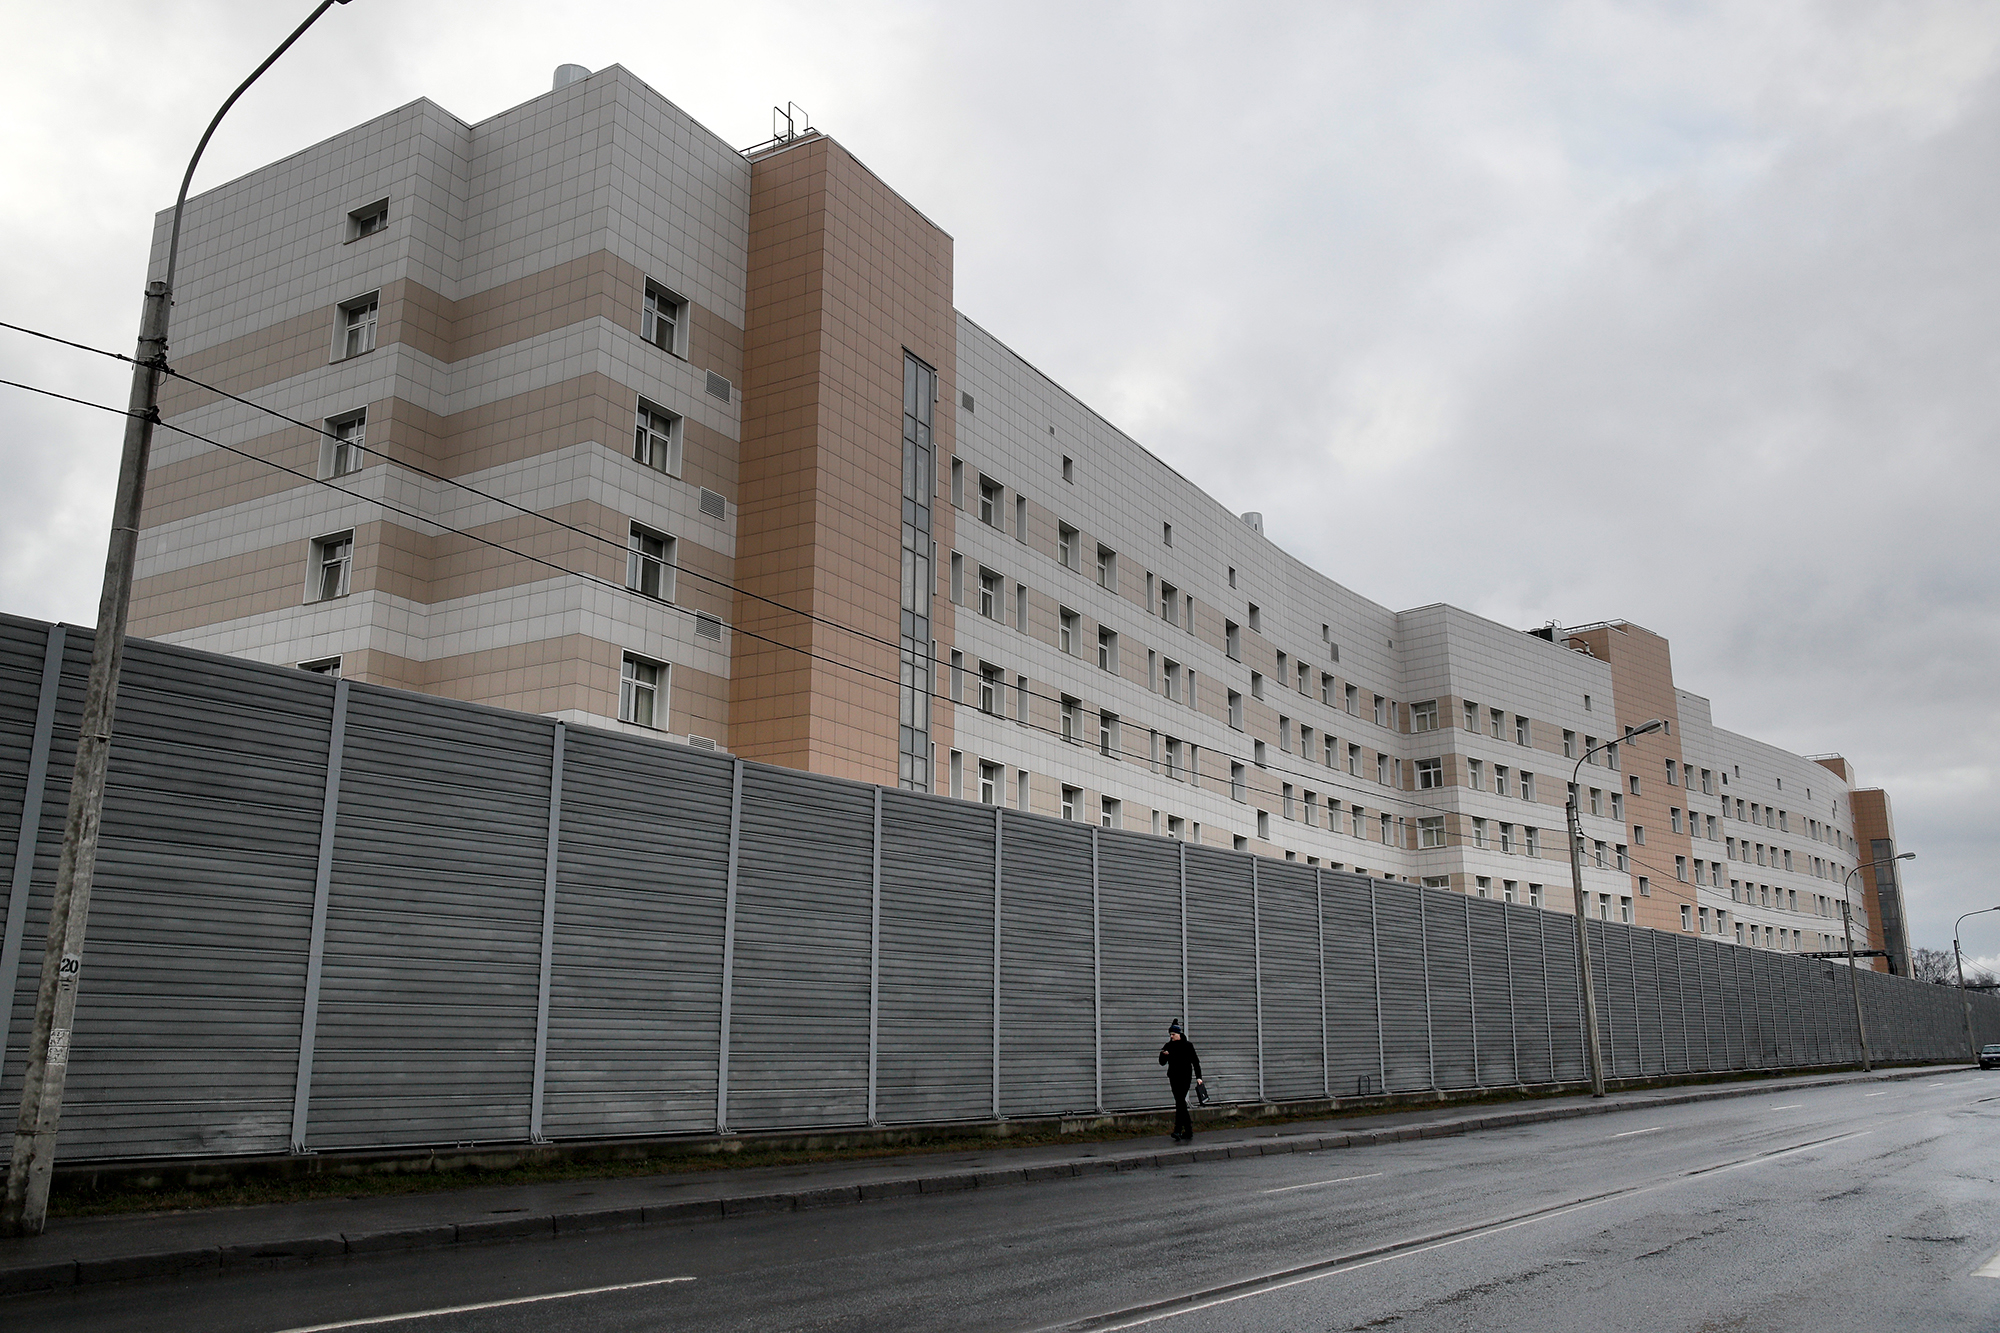 A man walks past a fence in front of the Botkin hospital in St. Petersburg, Russia, Wednesday, Feb. 12, 2020. A patient has fled the hospital where she was quarantined after coming down with a sore throat after returning to St. Petersburg from Hainan in China. (AP Photo/Dmitri Lovetsky)